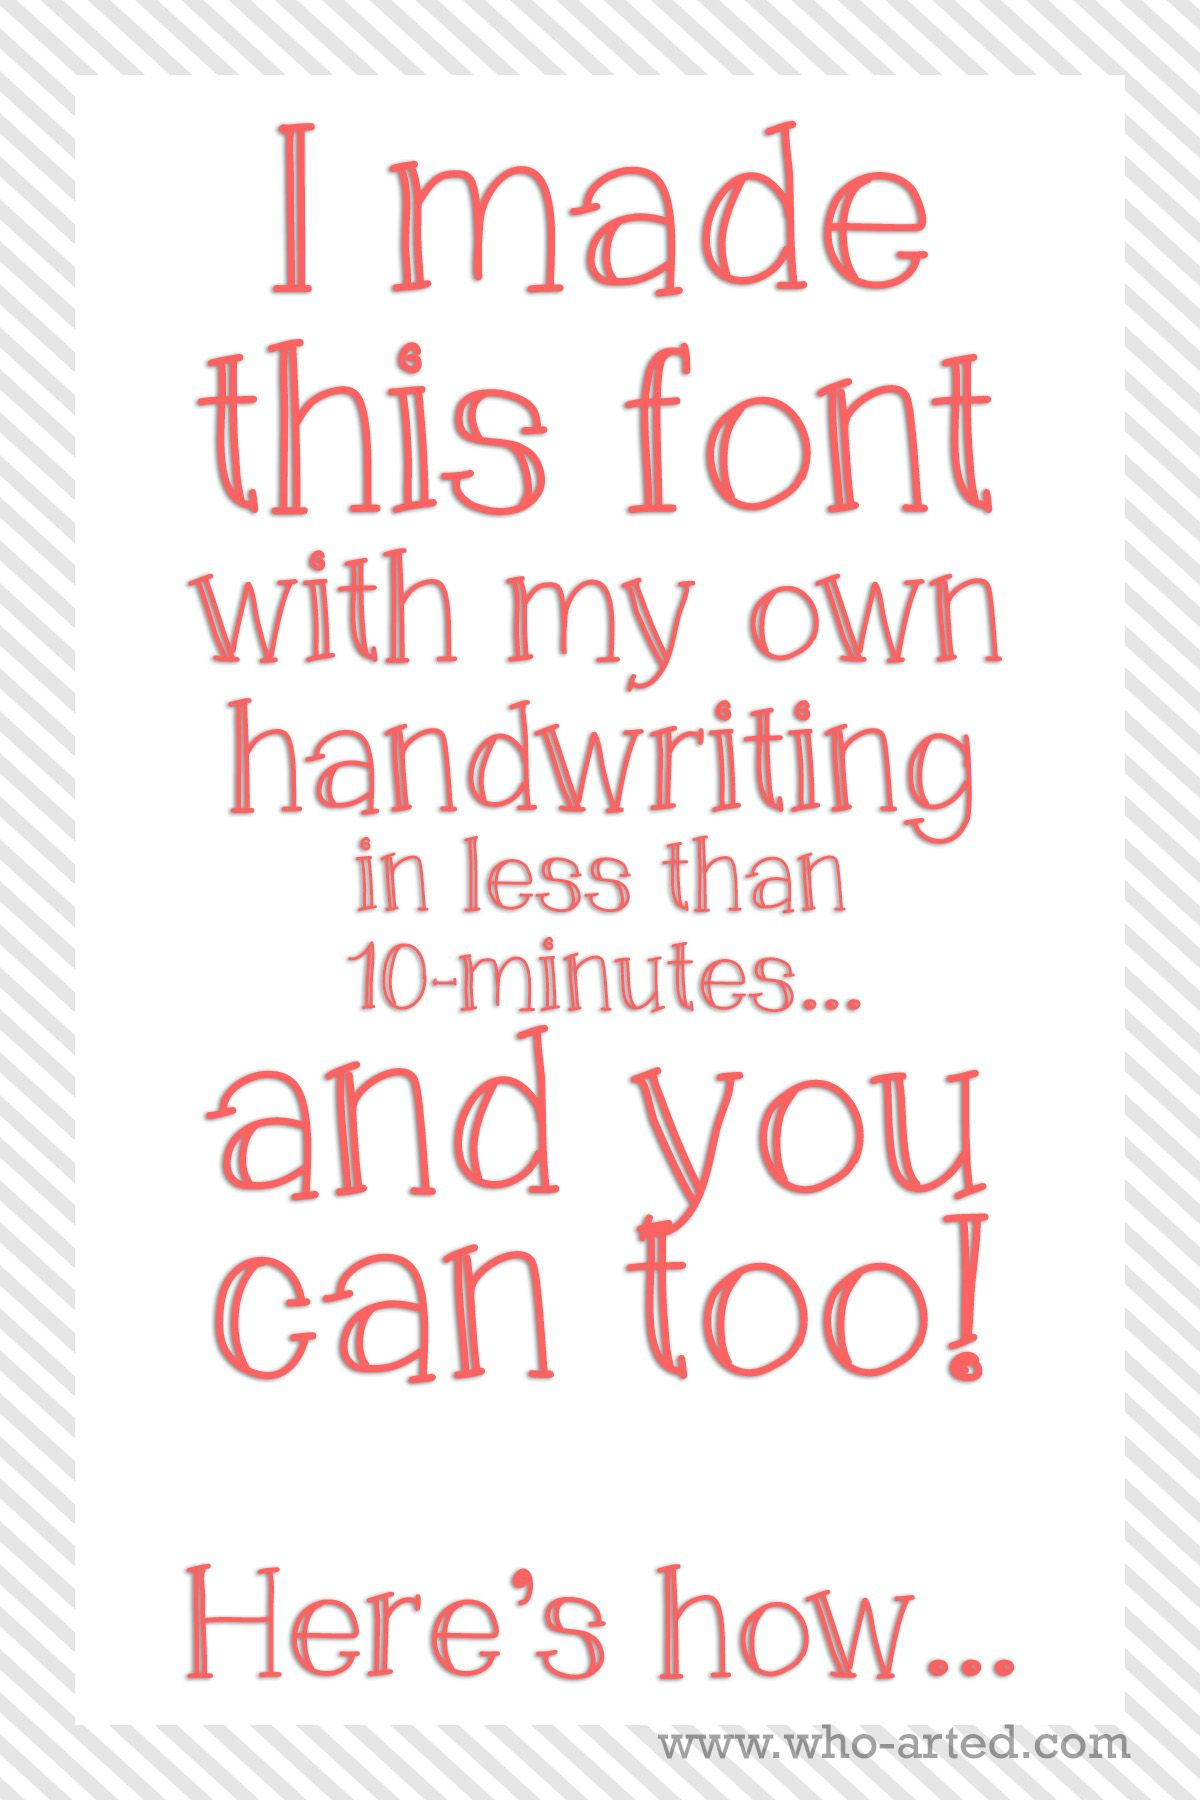 You can make the font bigger or smaller on any website you